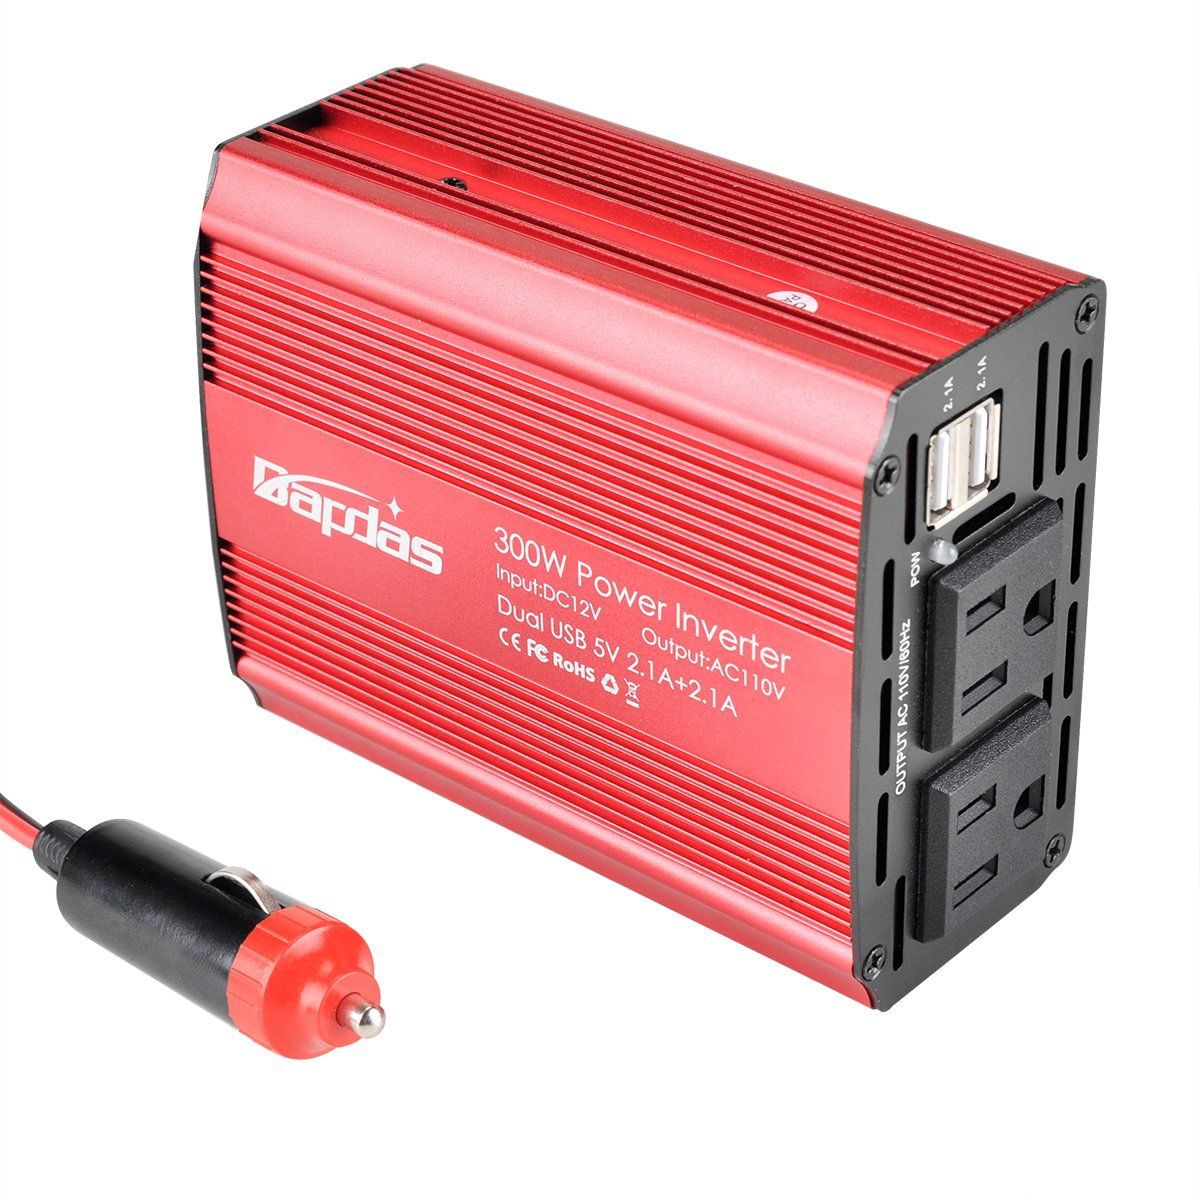 https://amzrc.com/deals/bapdas-car-power-inverter-with-300w-dual-110v-ac-outlets-dual-4-8a-usb-dc-12v-to-110v-ac-car-power-converter-adapter-charging-for-camera-tablet-smartphone-loptop-and-more-70-off/ - Bapdas Car Power Inverter with 300W Dual 110V AC Outlets Dual 4.8A USB DC 12V to 110V AC Car Power Converter Adapter Charging for Camera Tablet Smartphone Loptop and more - 70% Off -  #lifehacks #mom #mothersday #amazon #discount #free #awesome